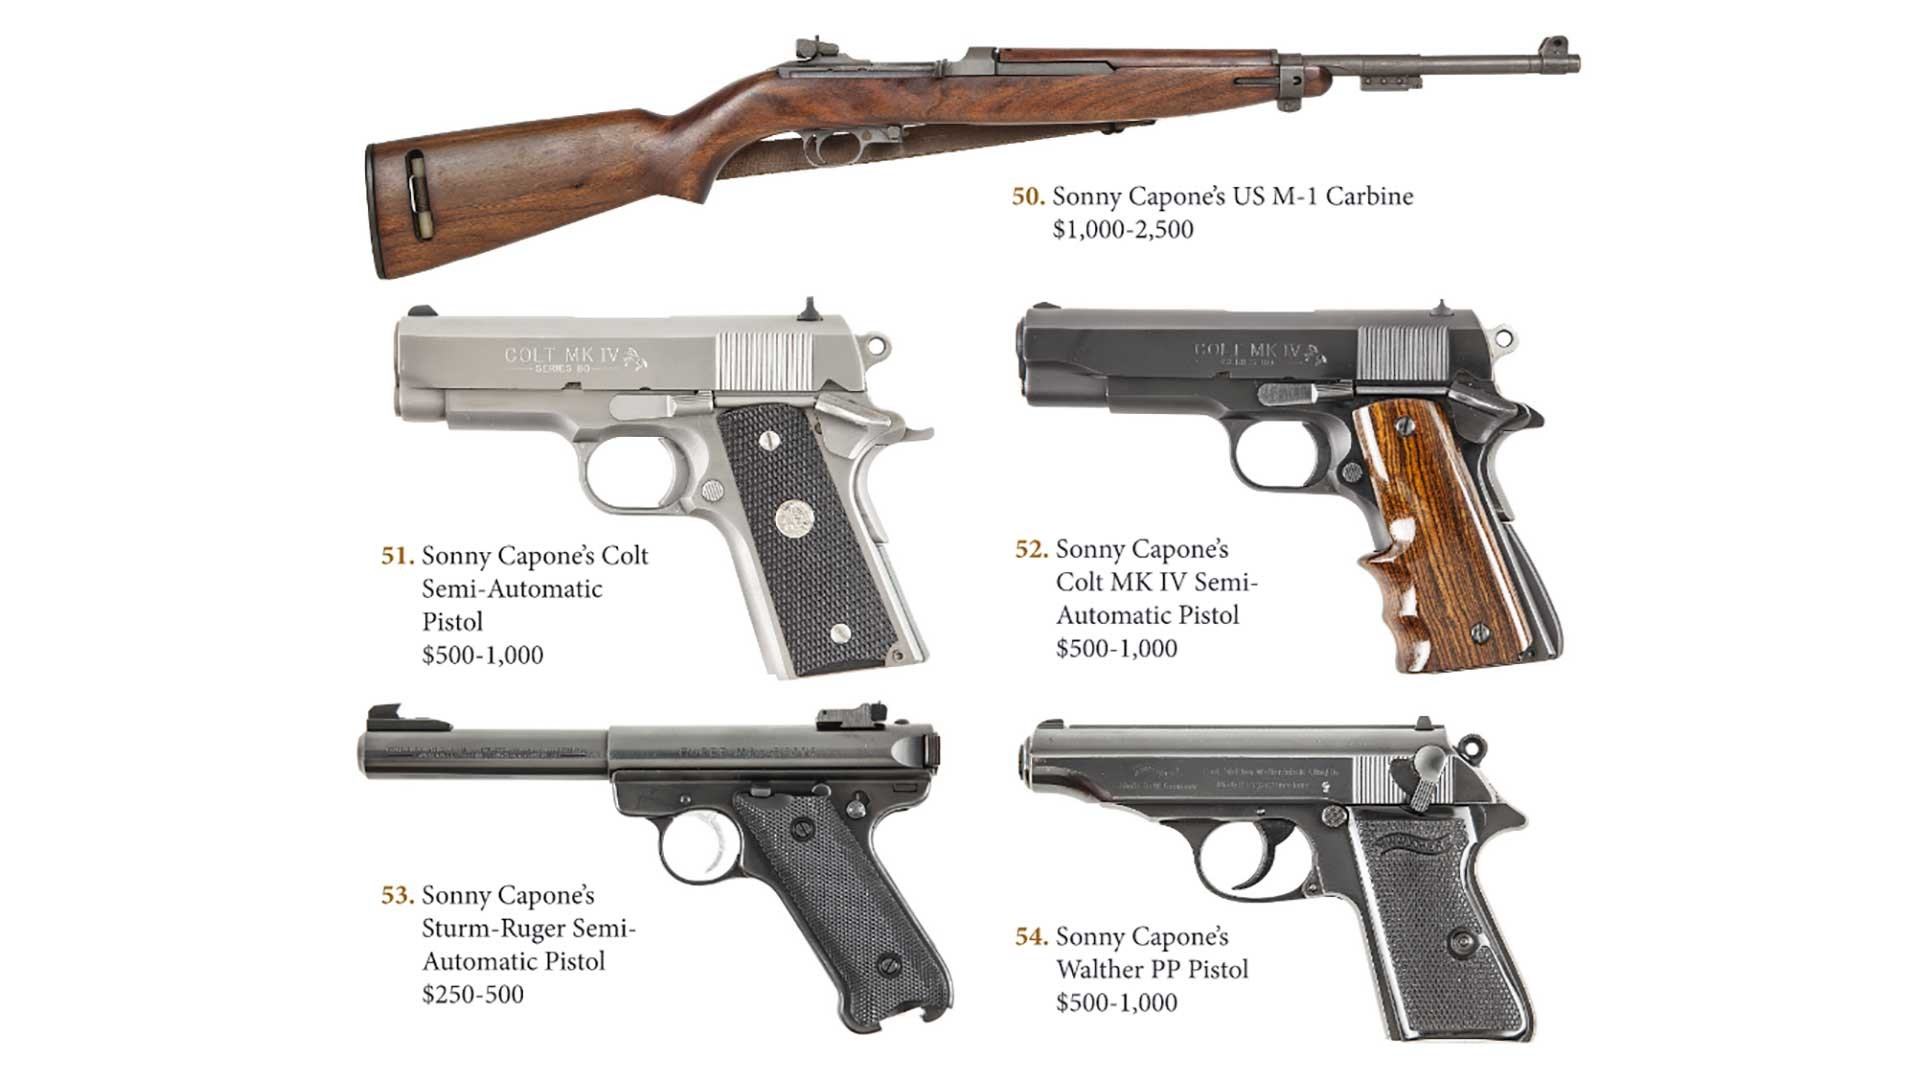 Several firearms owned by Sonny Capone shown on white, including an M1 Carbine, two 1911 pistols, a Walther PP and a Ruger pistol.